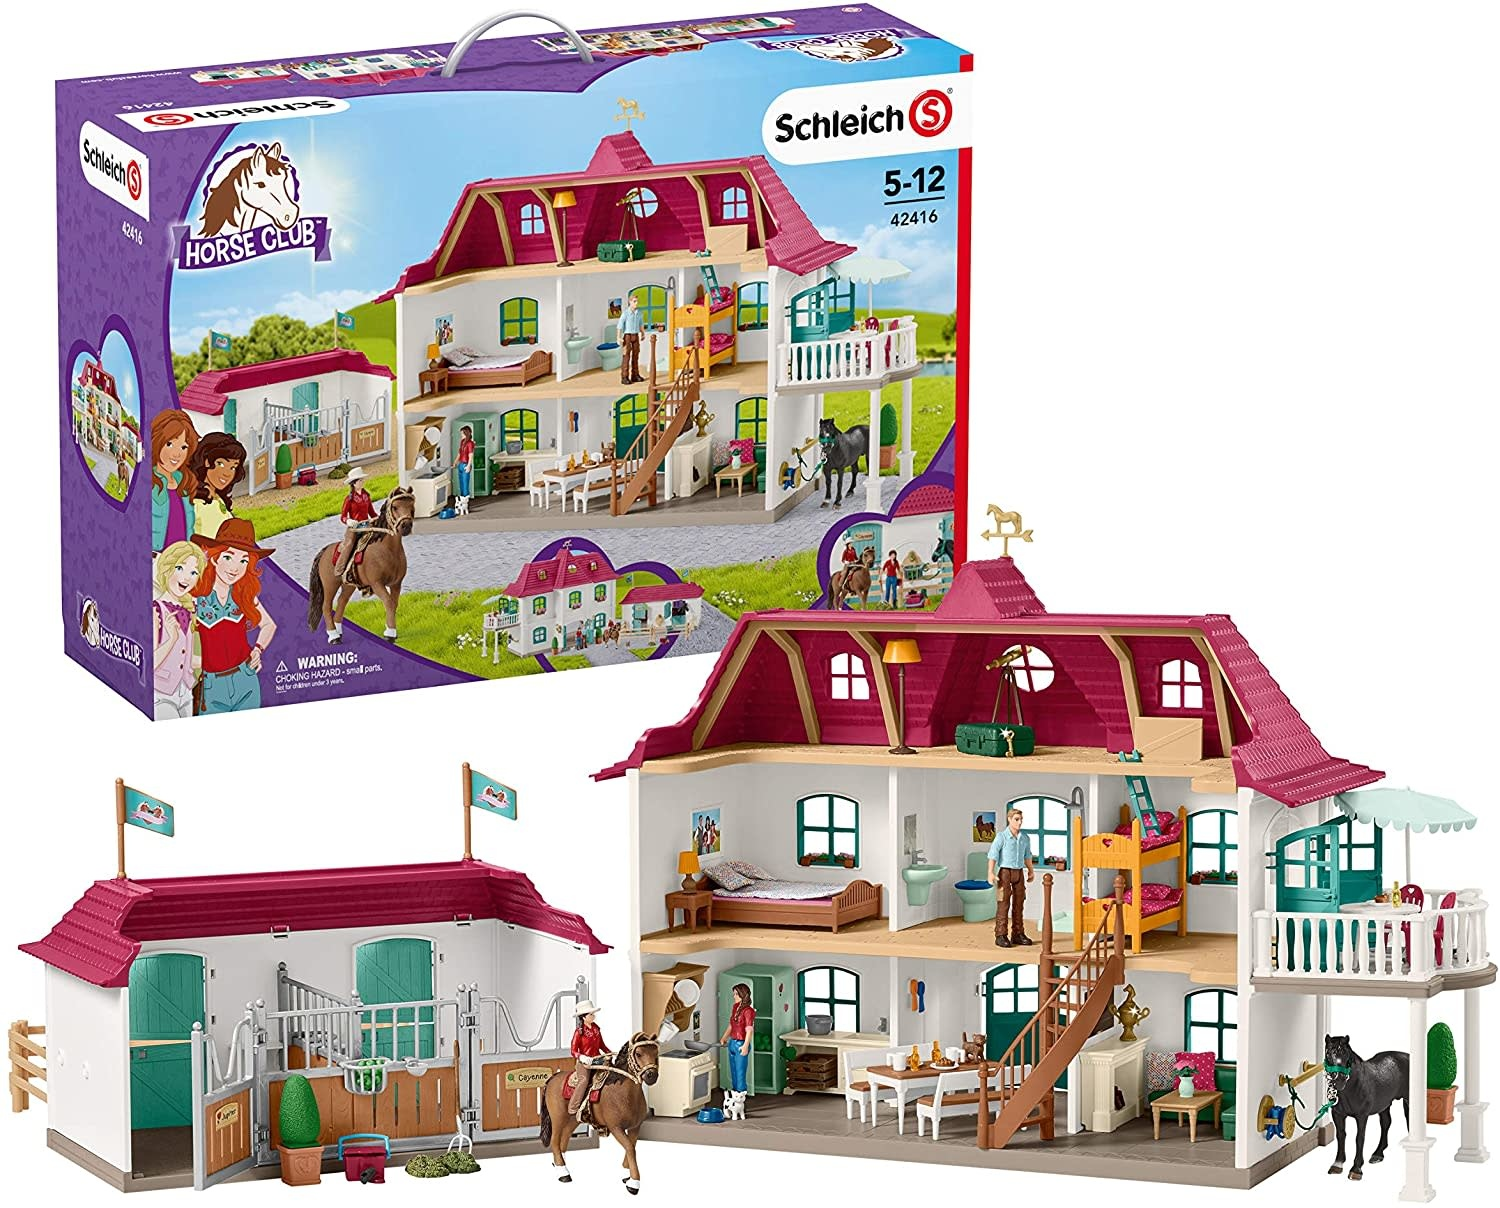 Schleich Horse Stable w/ House Large-1